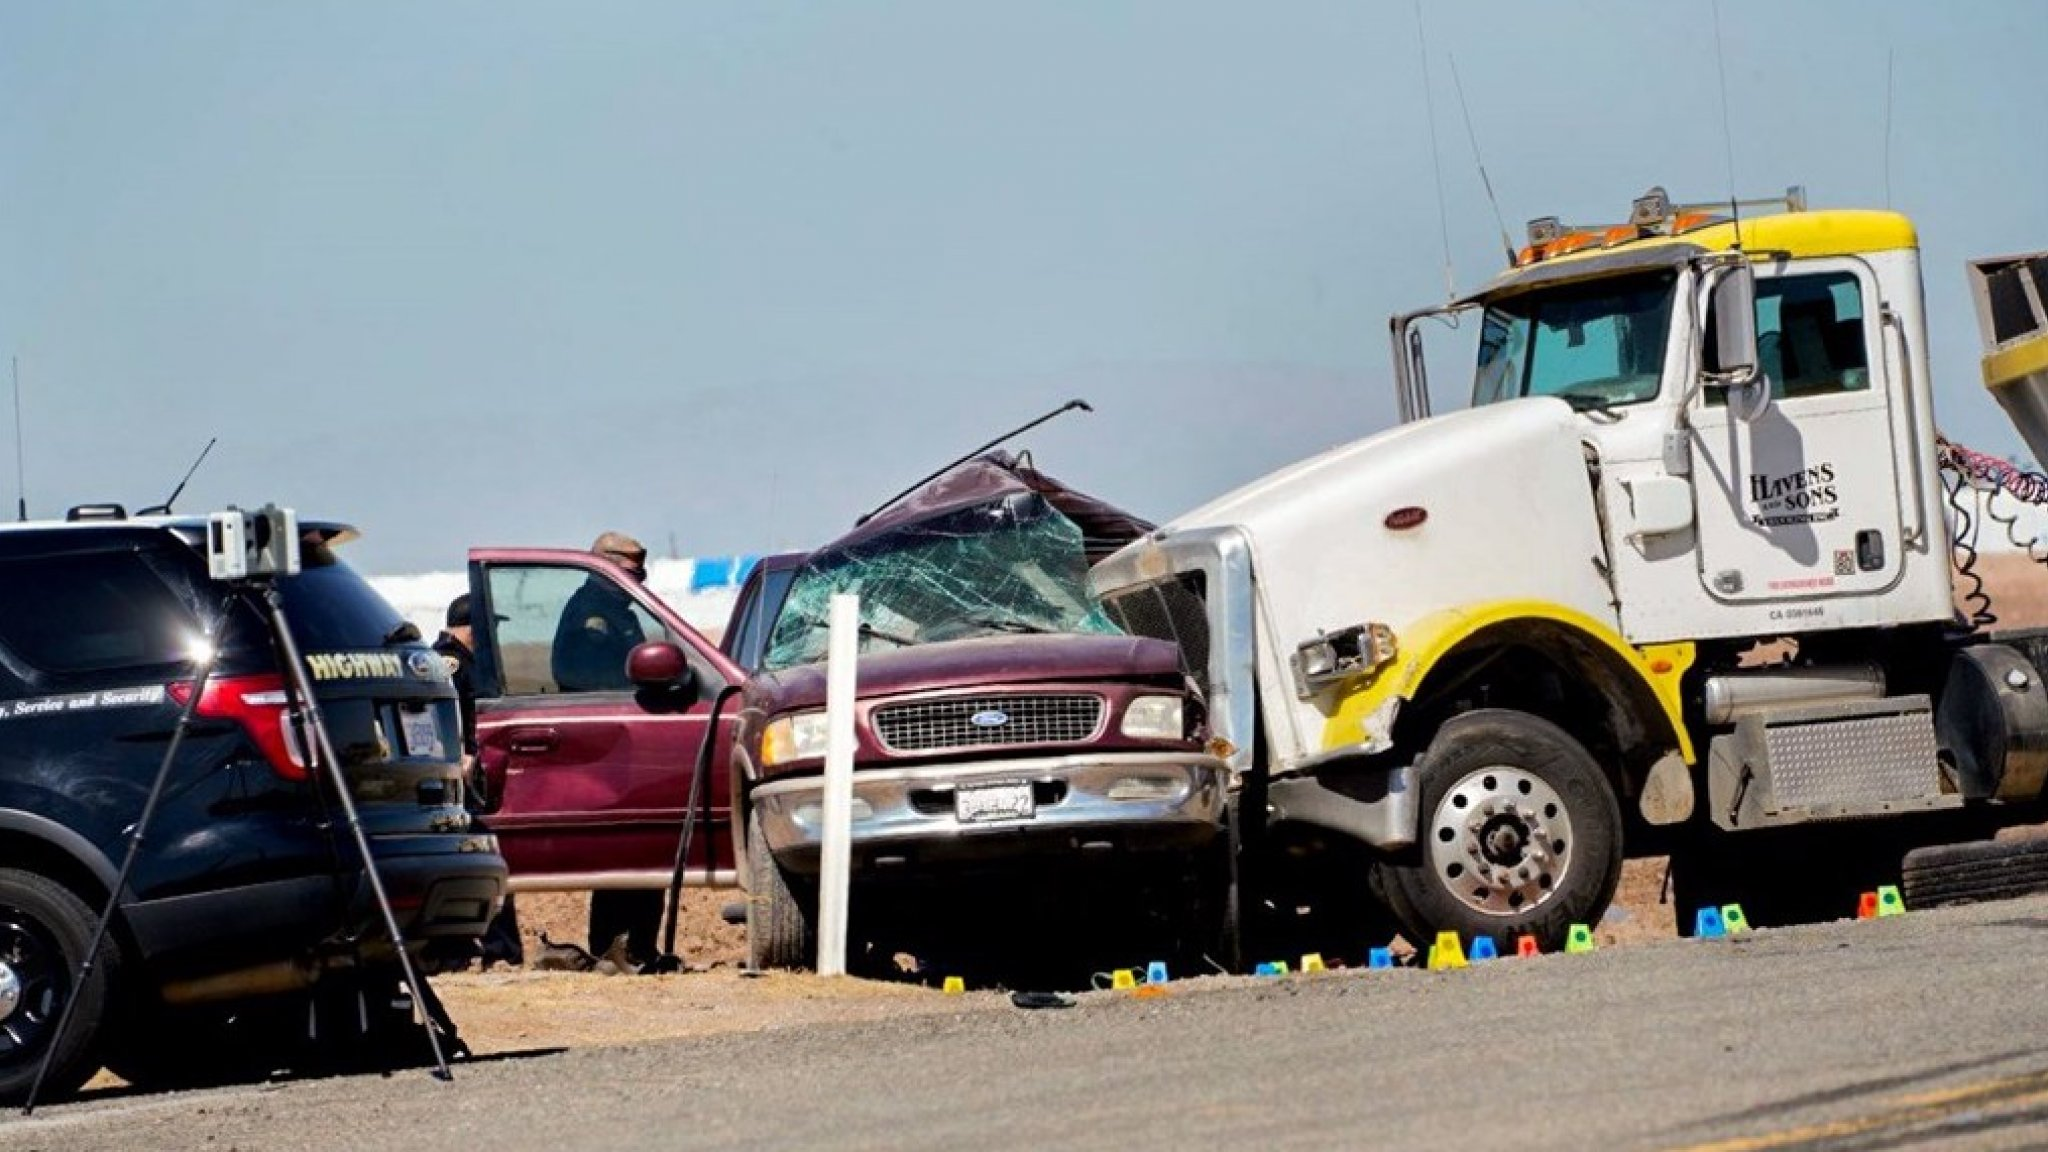 13 of the 25 passengers in one car died in a US road accident